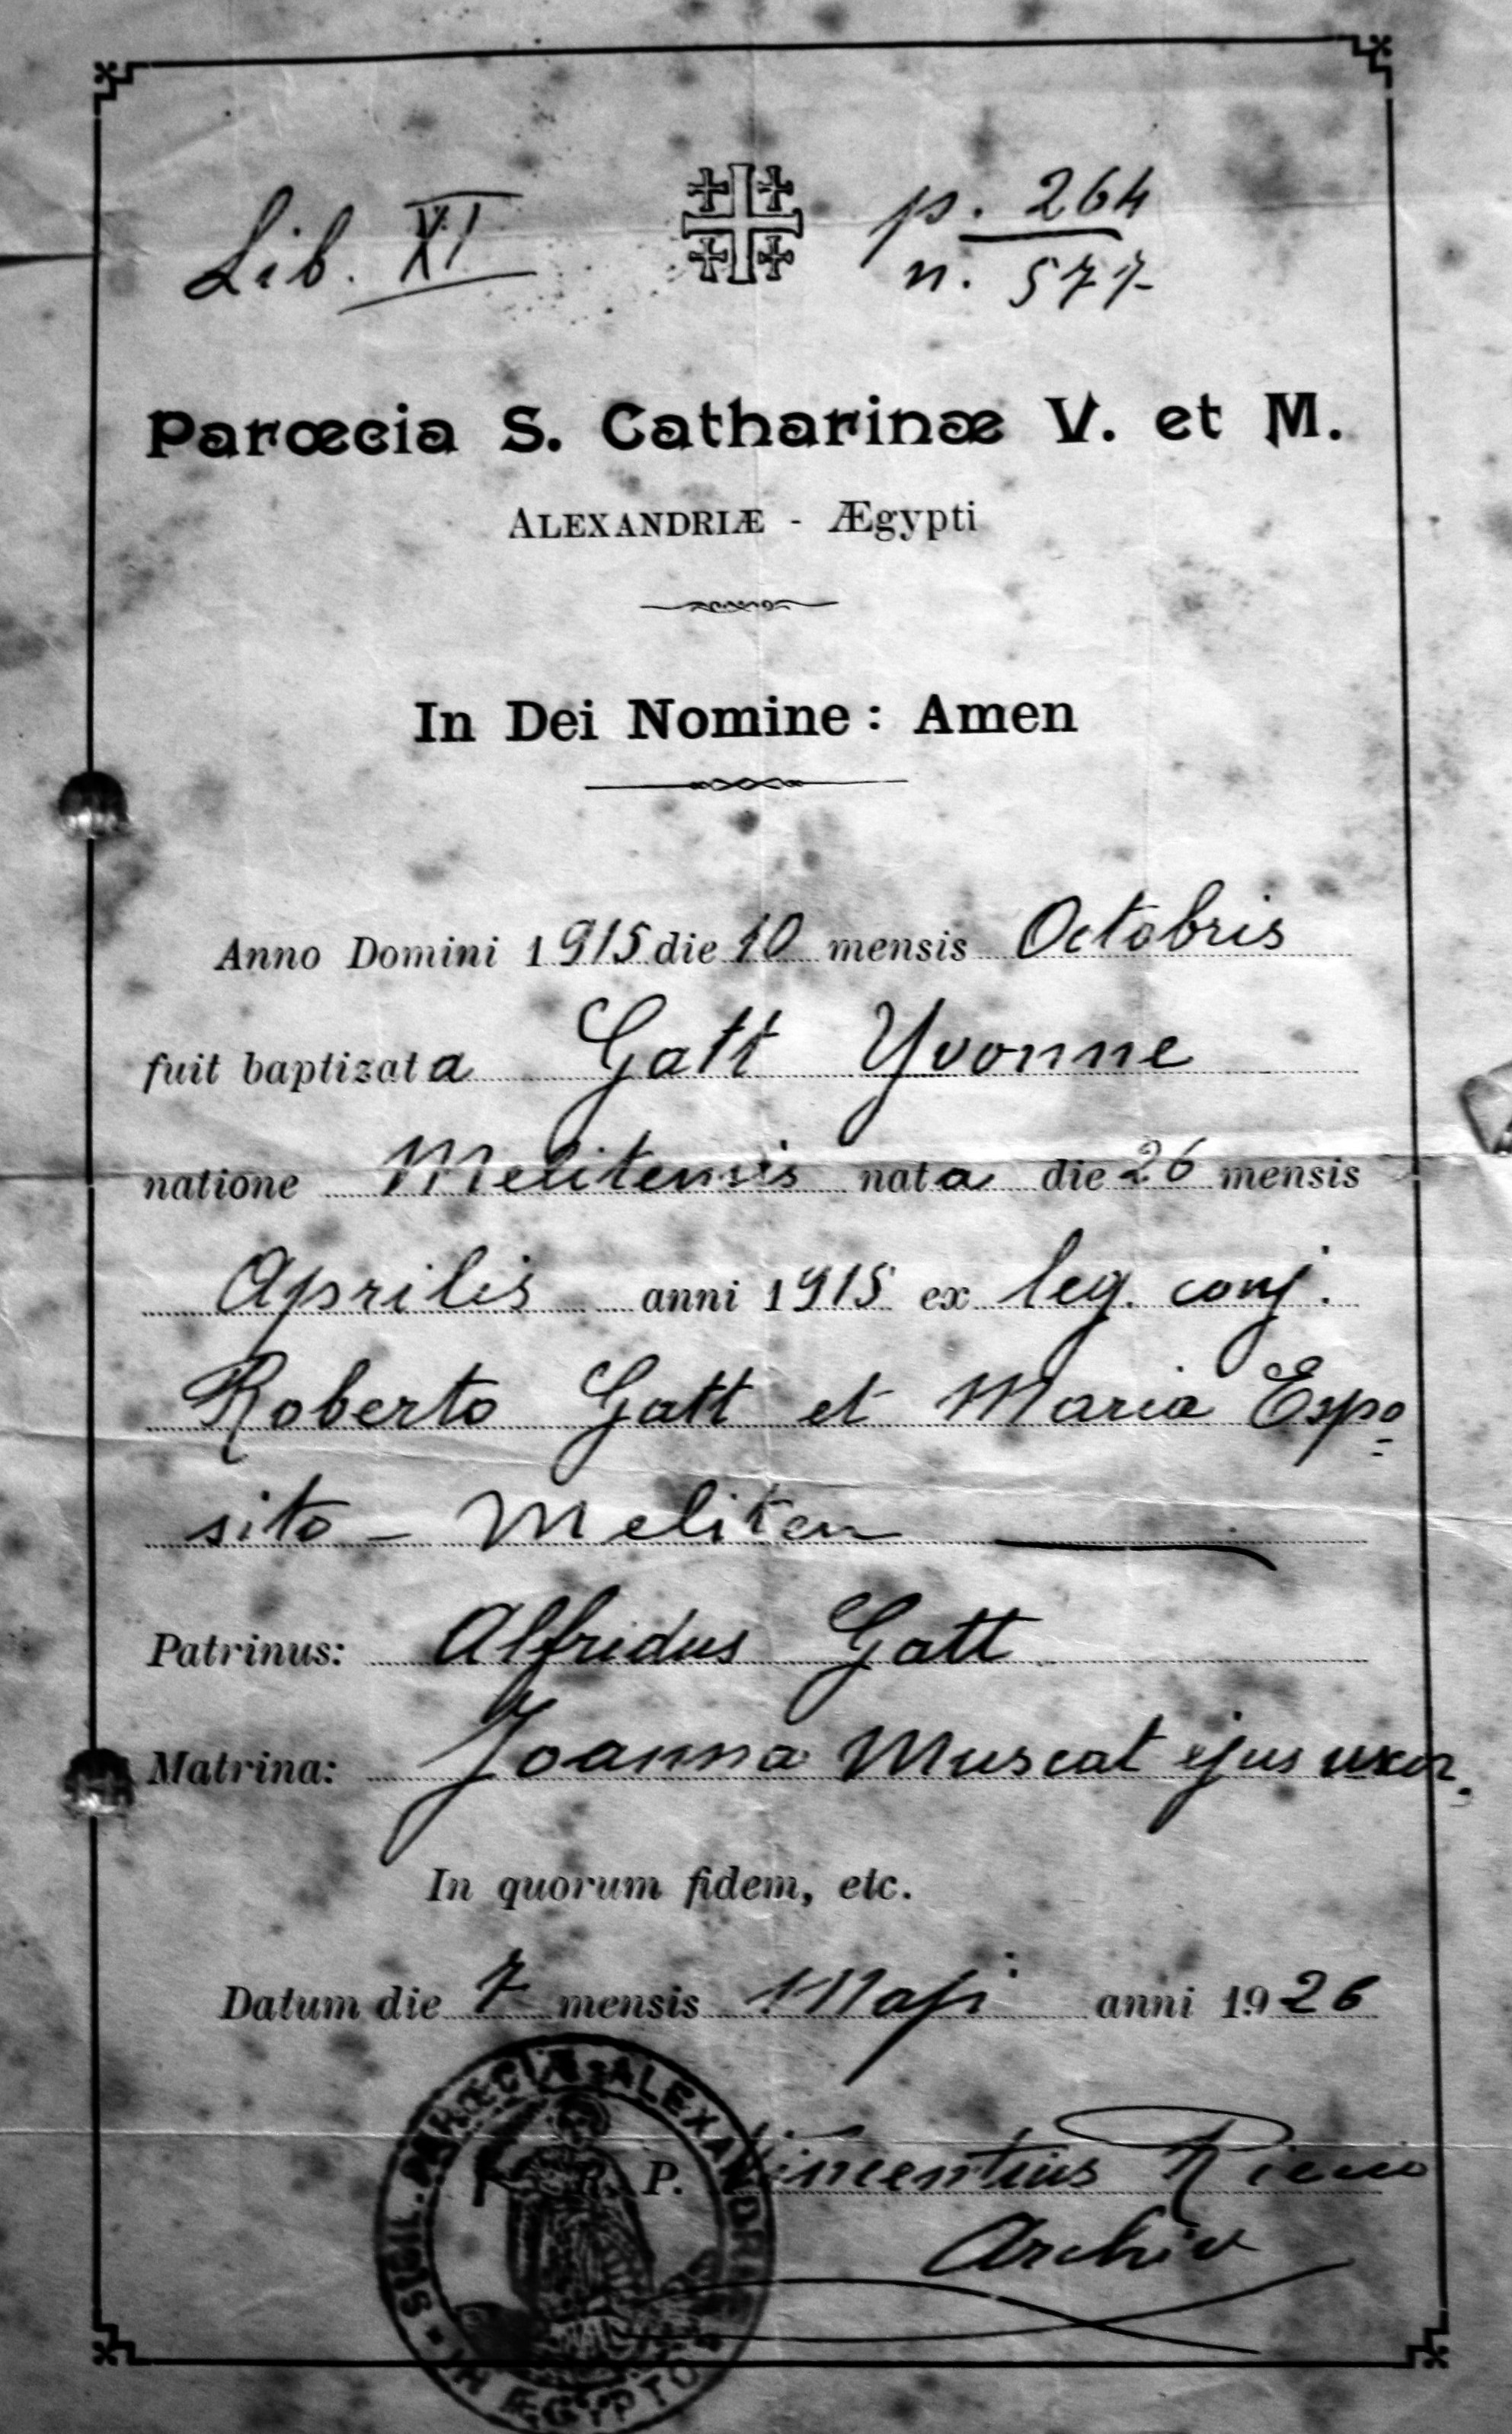 Christian Baptism Certificate of my mother, Yvonne Gatt, born in Alexandria 1915